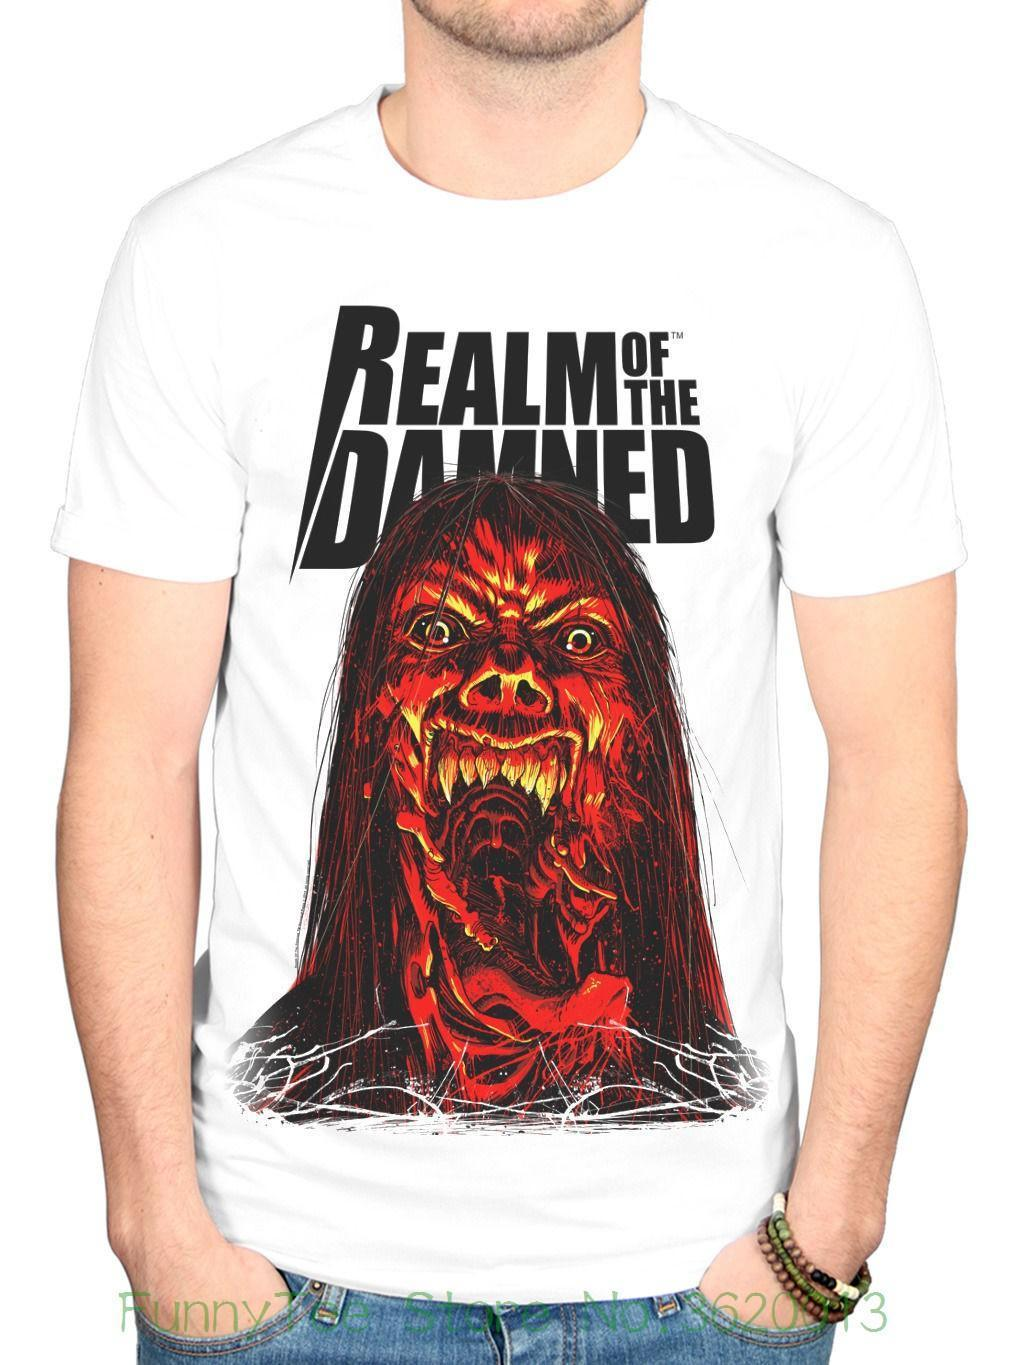 Official T Shirt Black THE DAMNED Punk Rock /'Realm of the Damned/' All Sizes